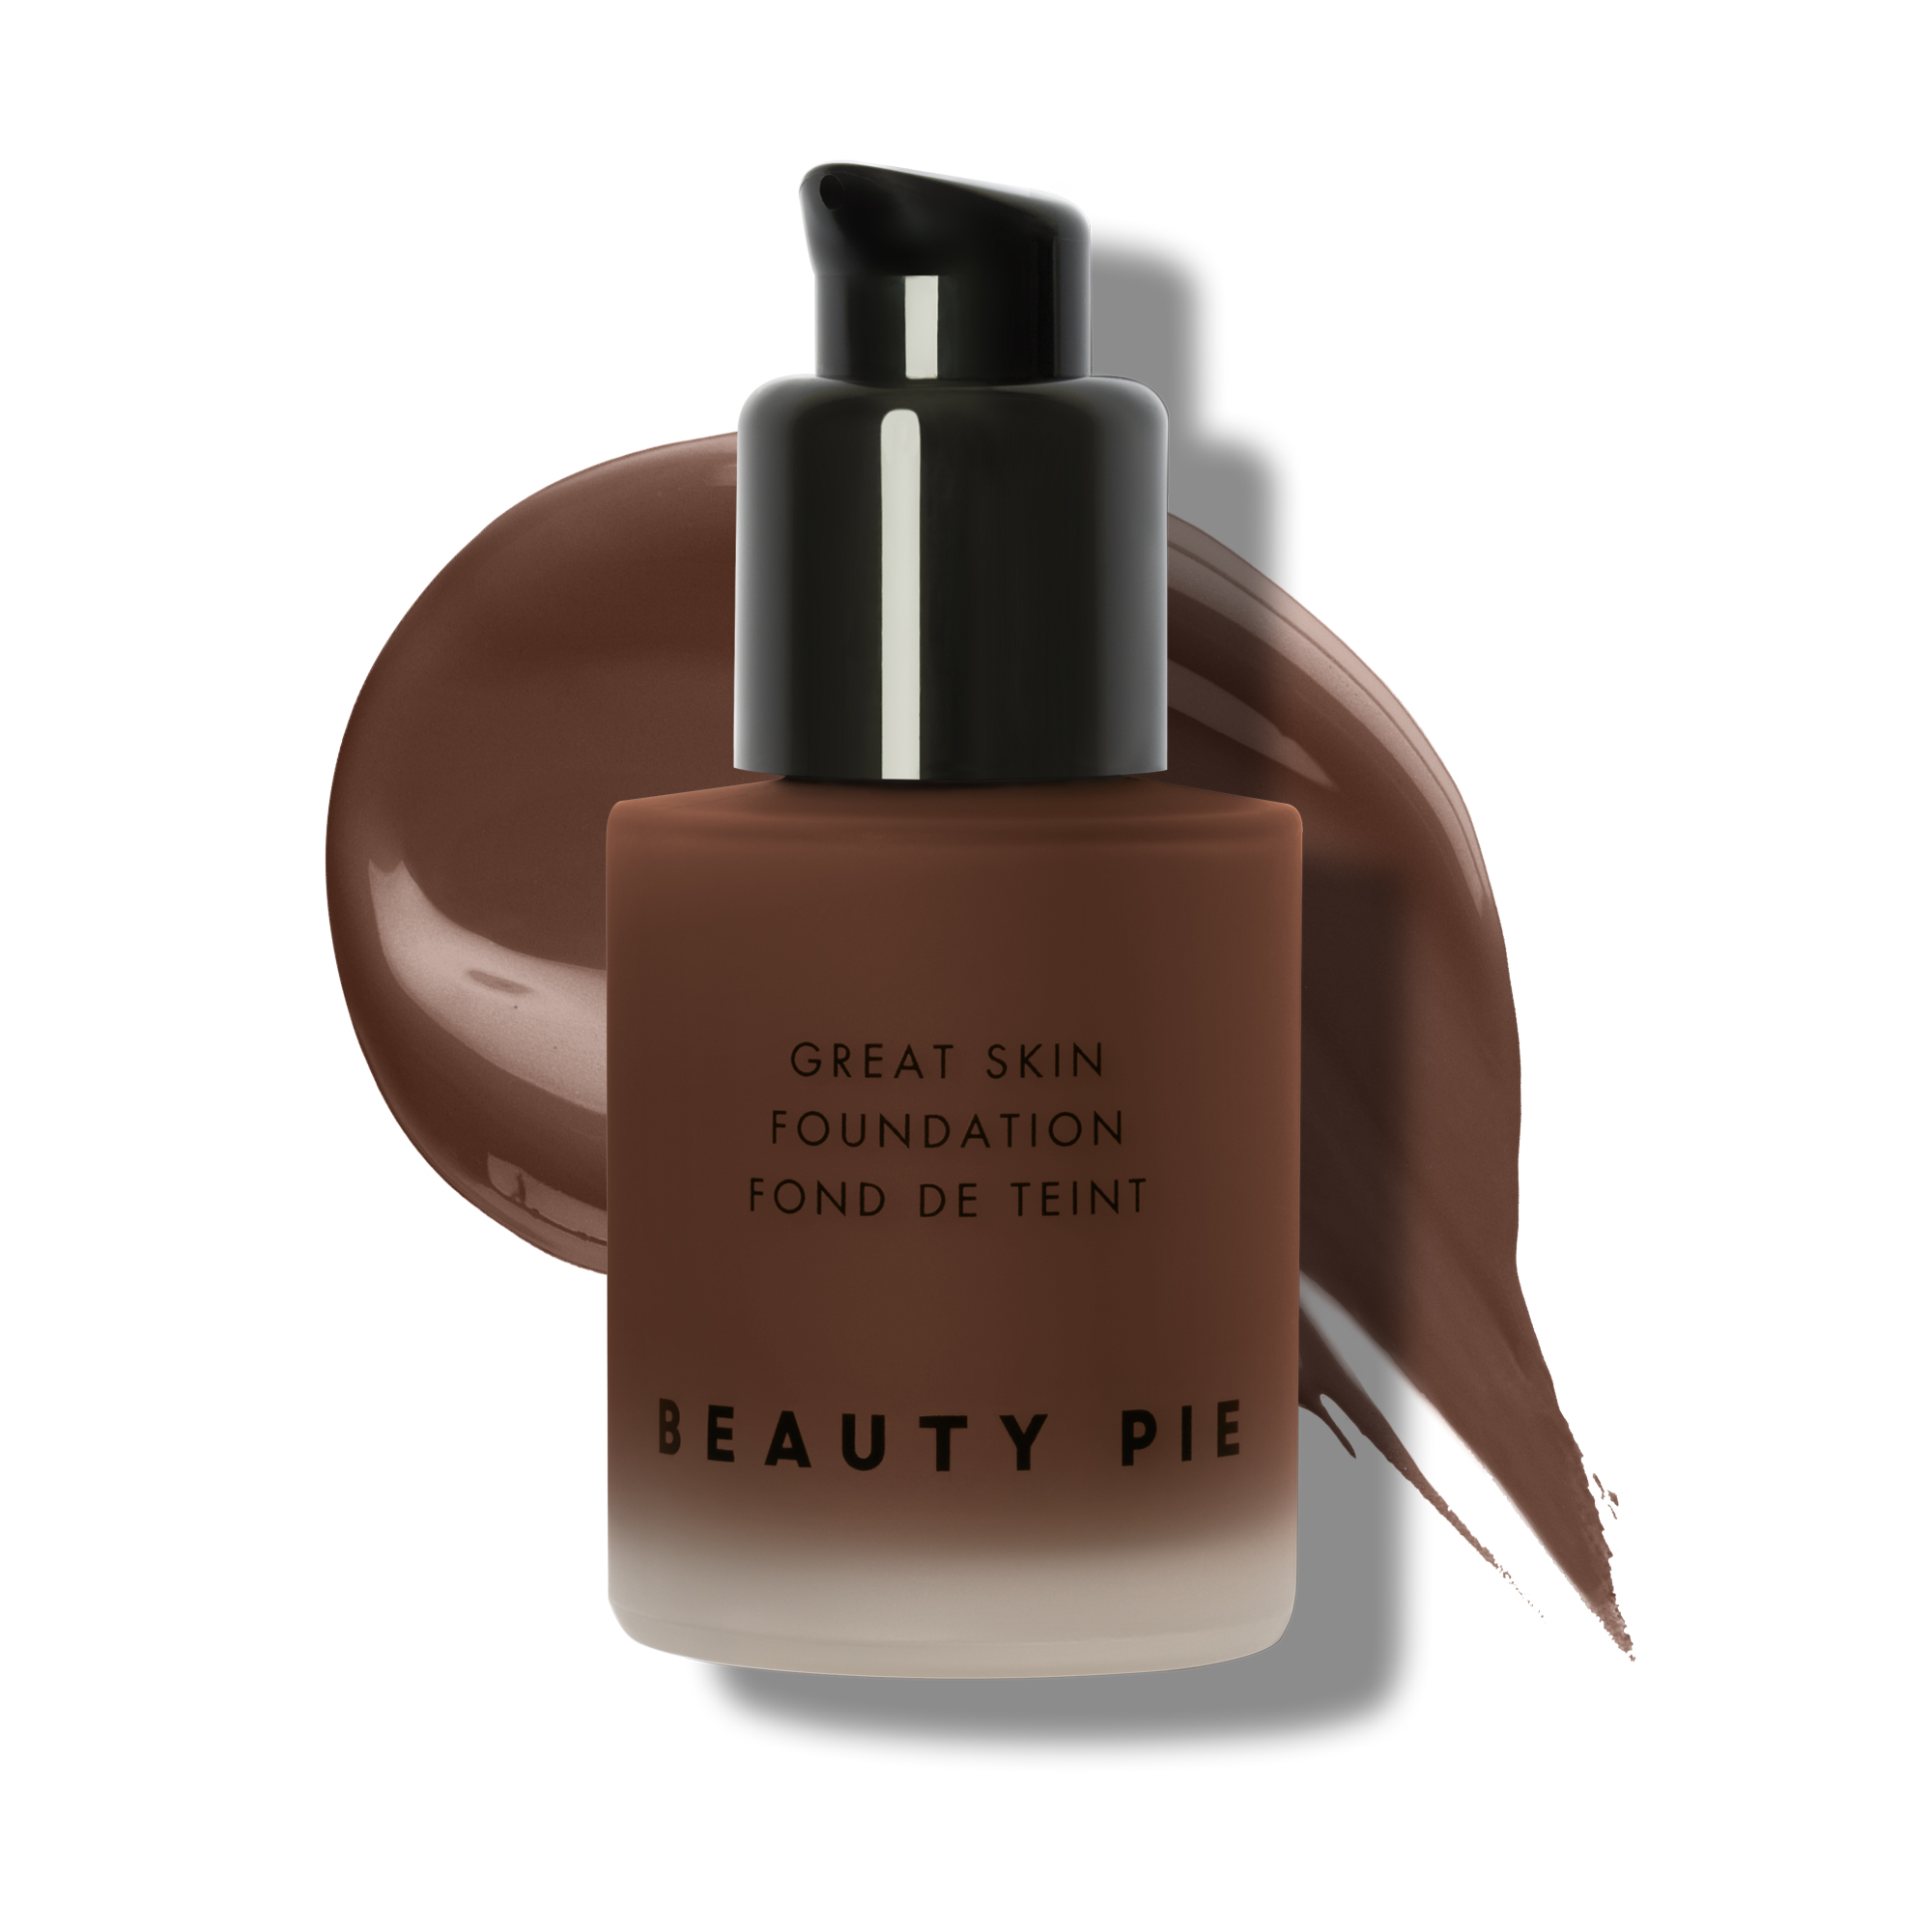 Everyday Great Skin Foundation in Cocoabean by Beauty Pie